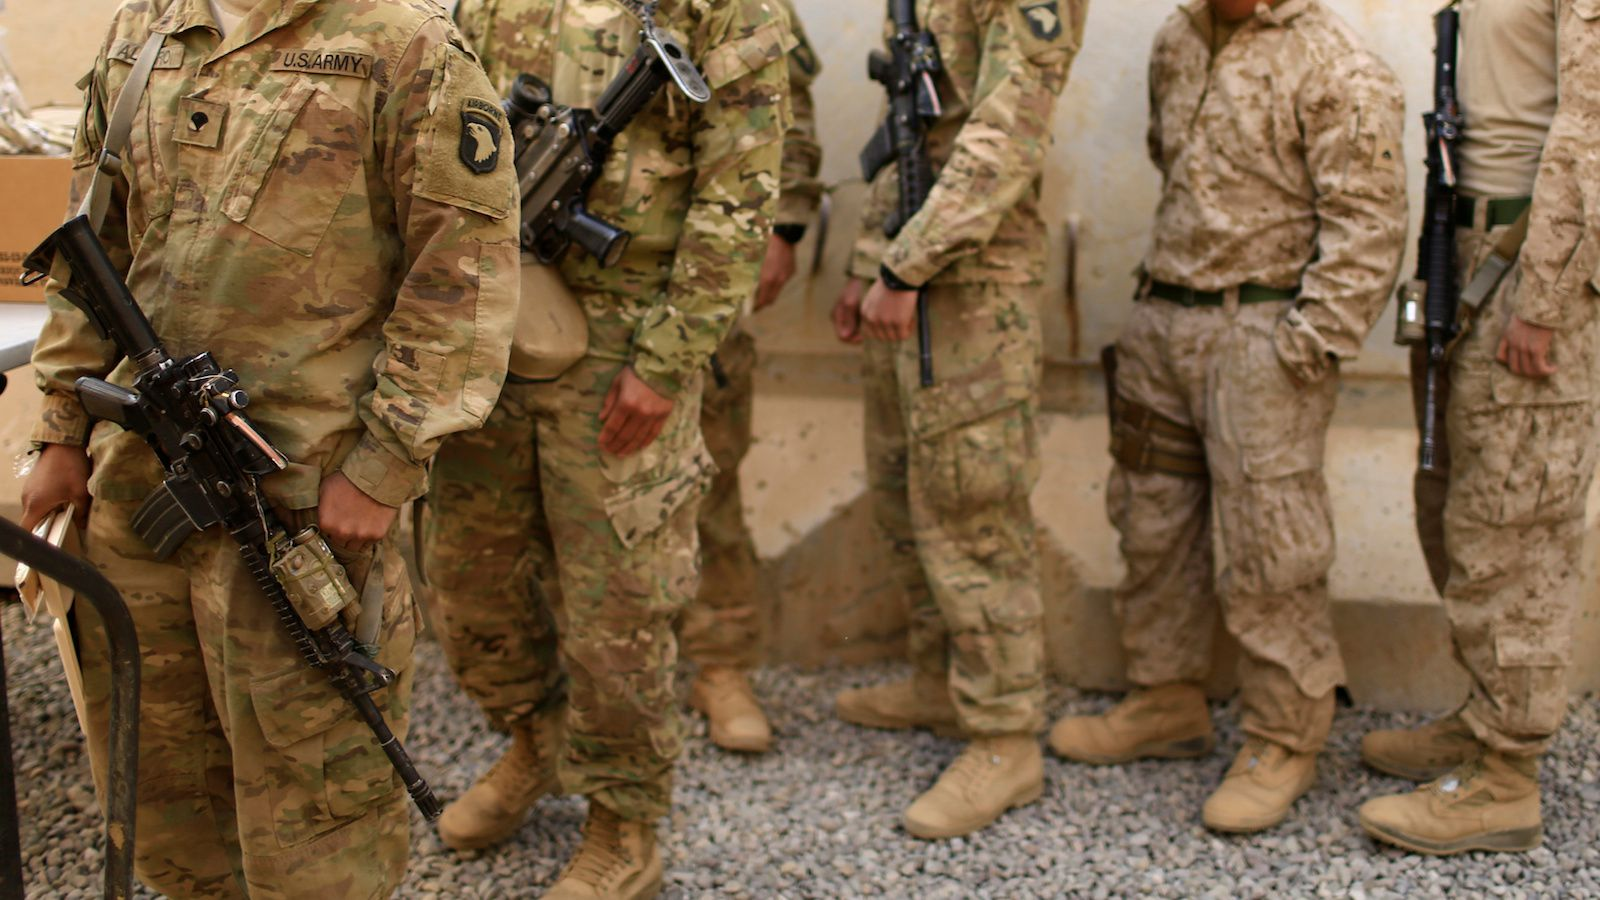 U.S. soldiers stand in line as they celebrate Thanksgiving Day inside the U.S. army base in Qayyara, south of Mosul, Iraq November 24, 2016. REUTERS/Thaier Al-Sudani - RTST4XG